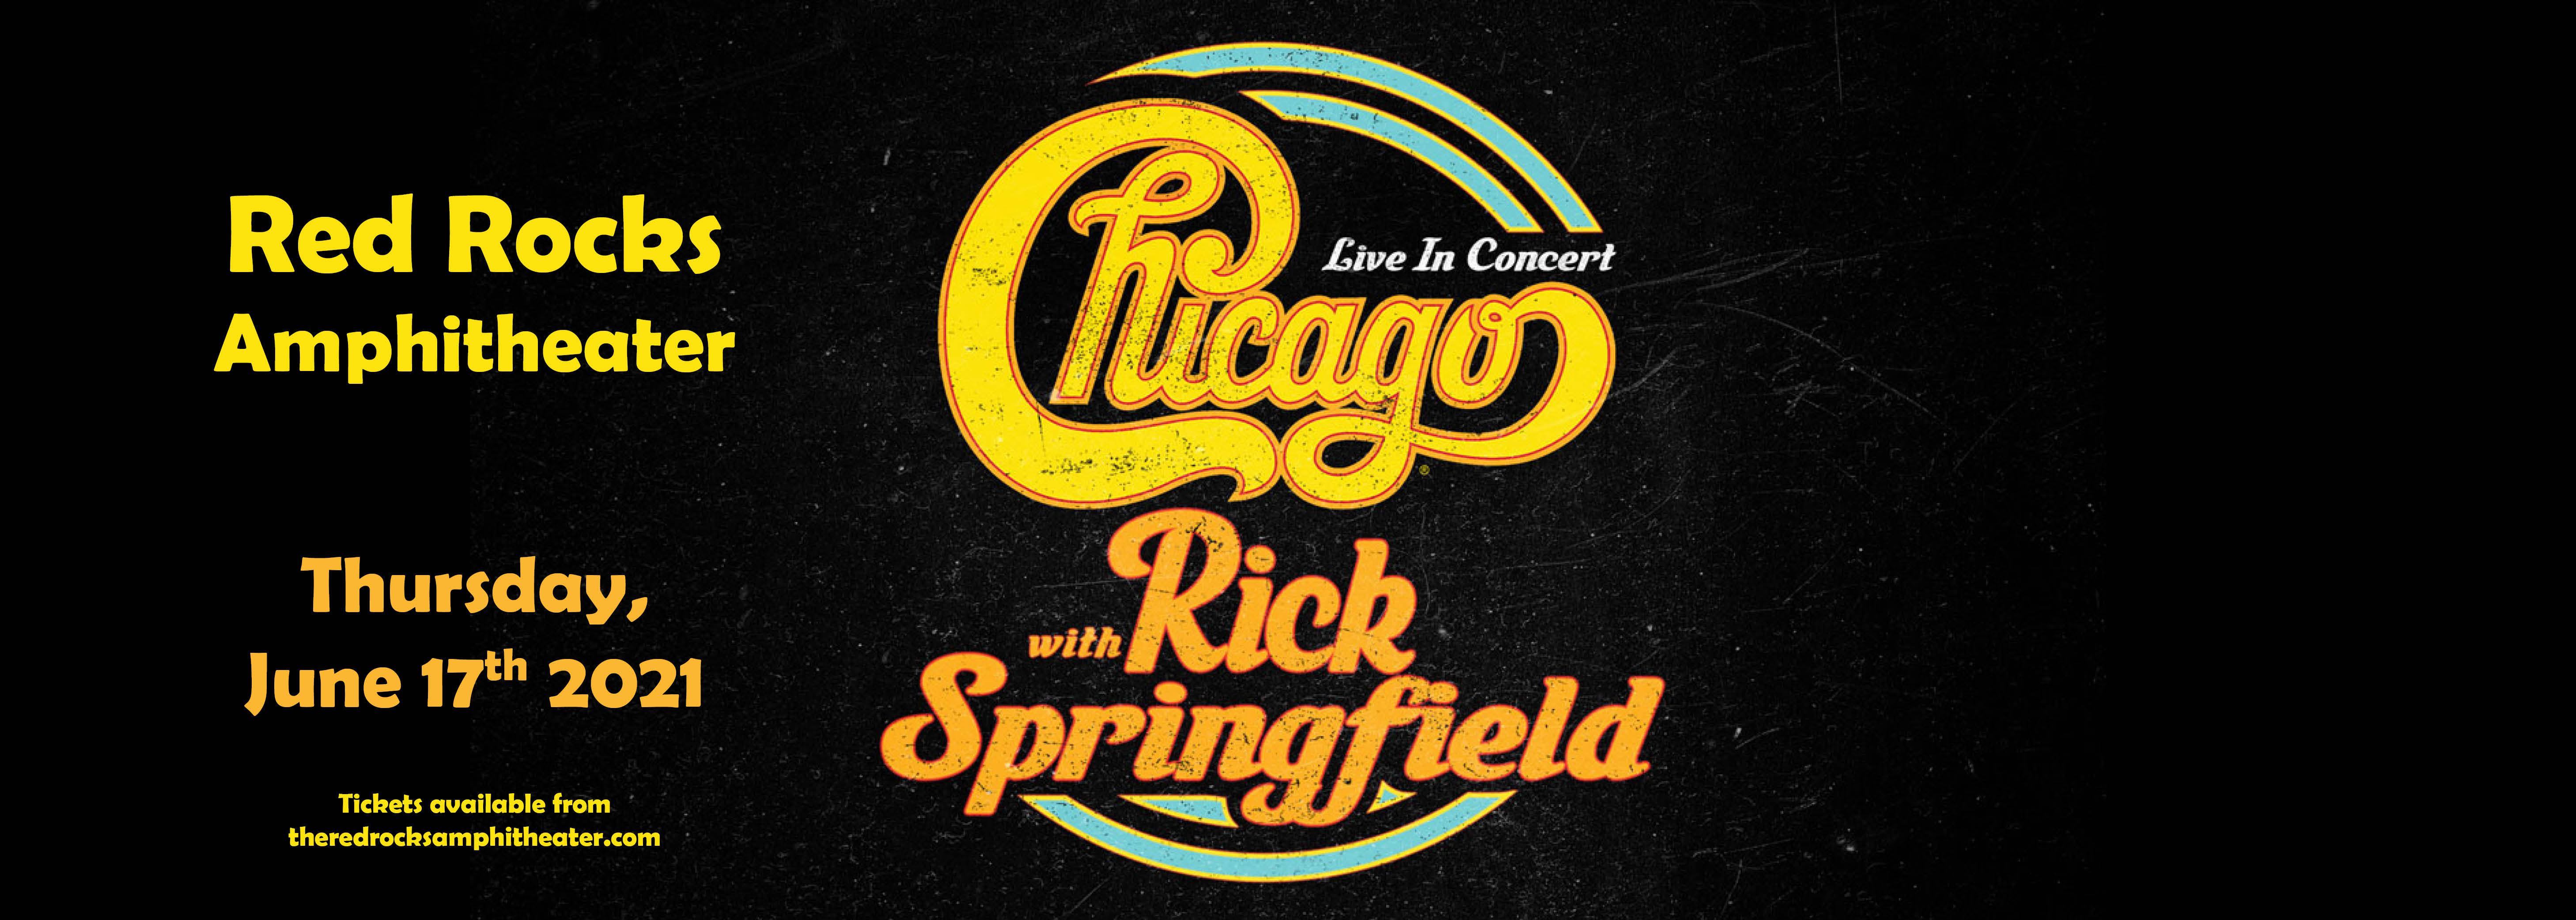 Chicago - The Band & Rick Springfield at Red Rocks Amphitheater